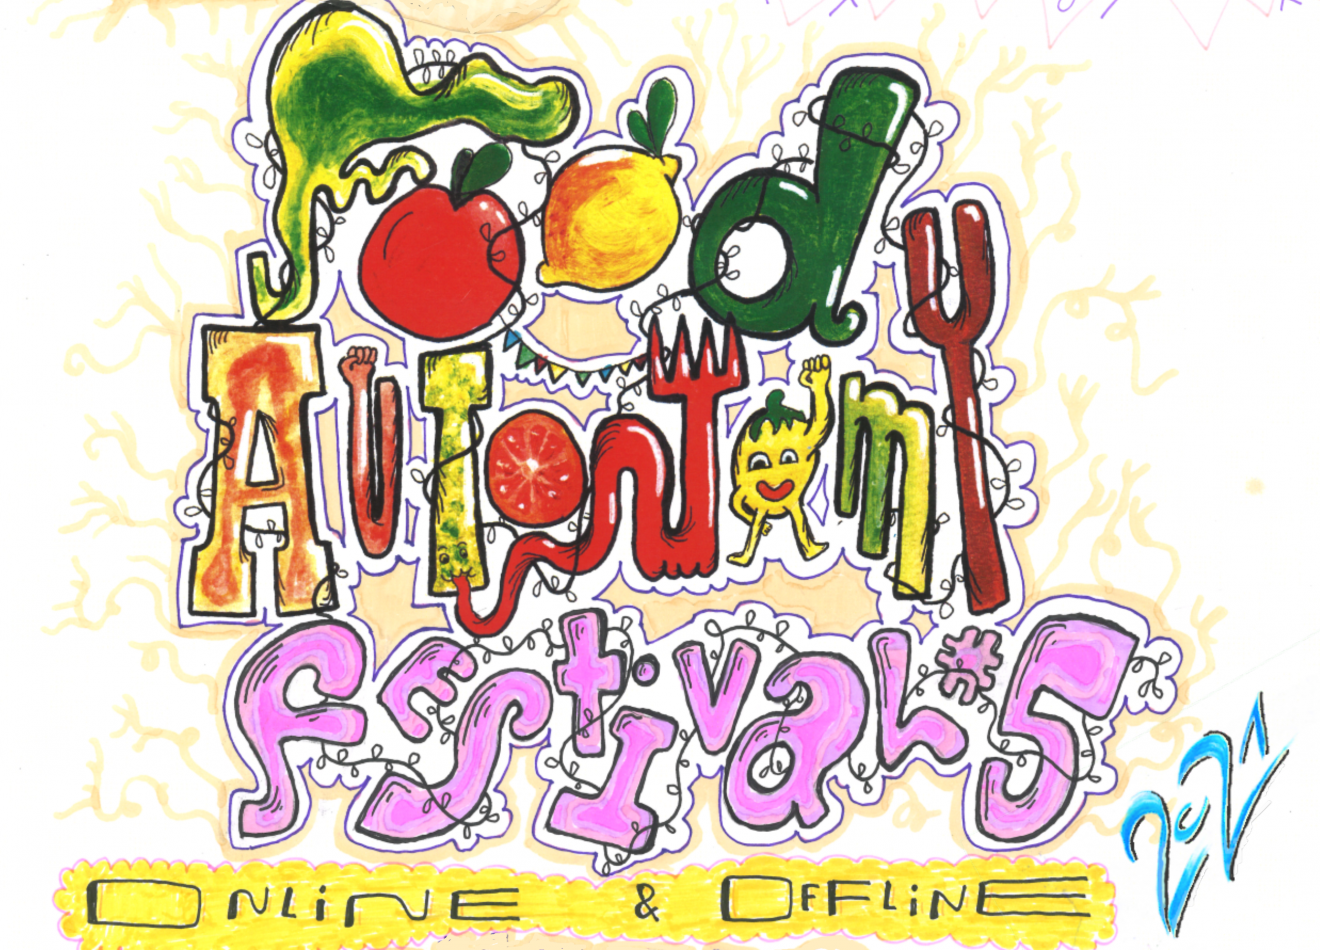 Food Autonomy Festival number 5 - online and offline 2021